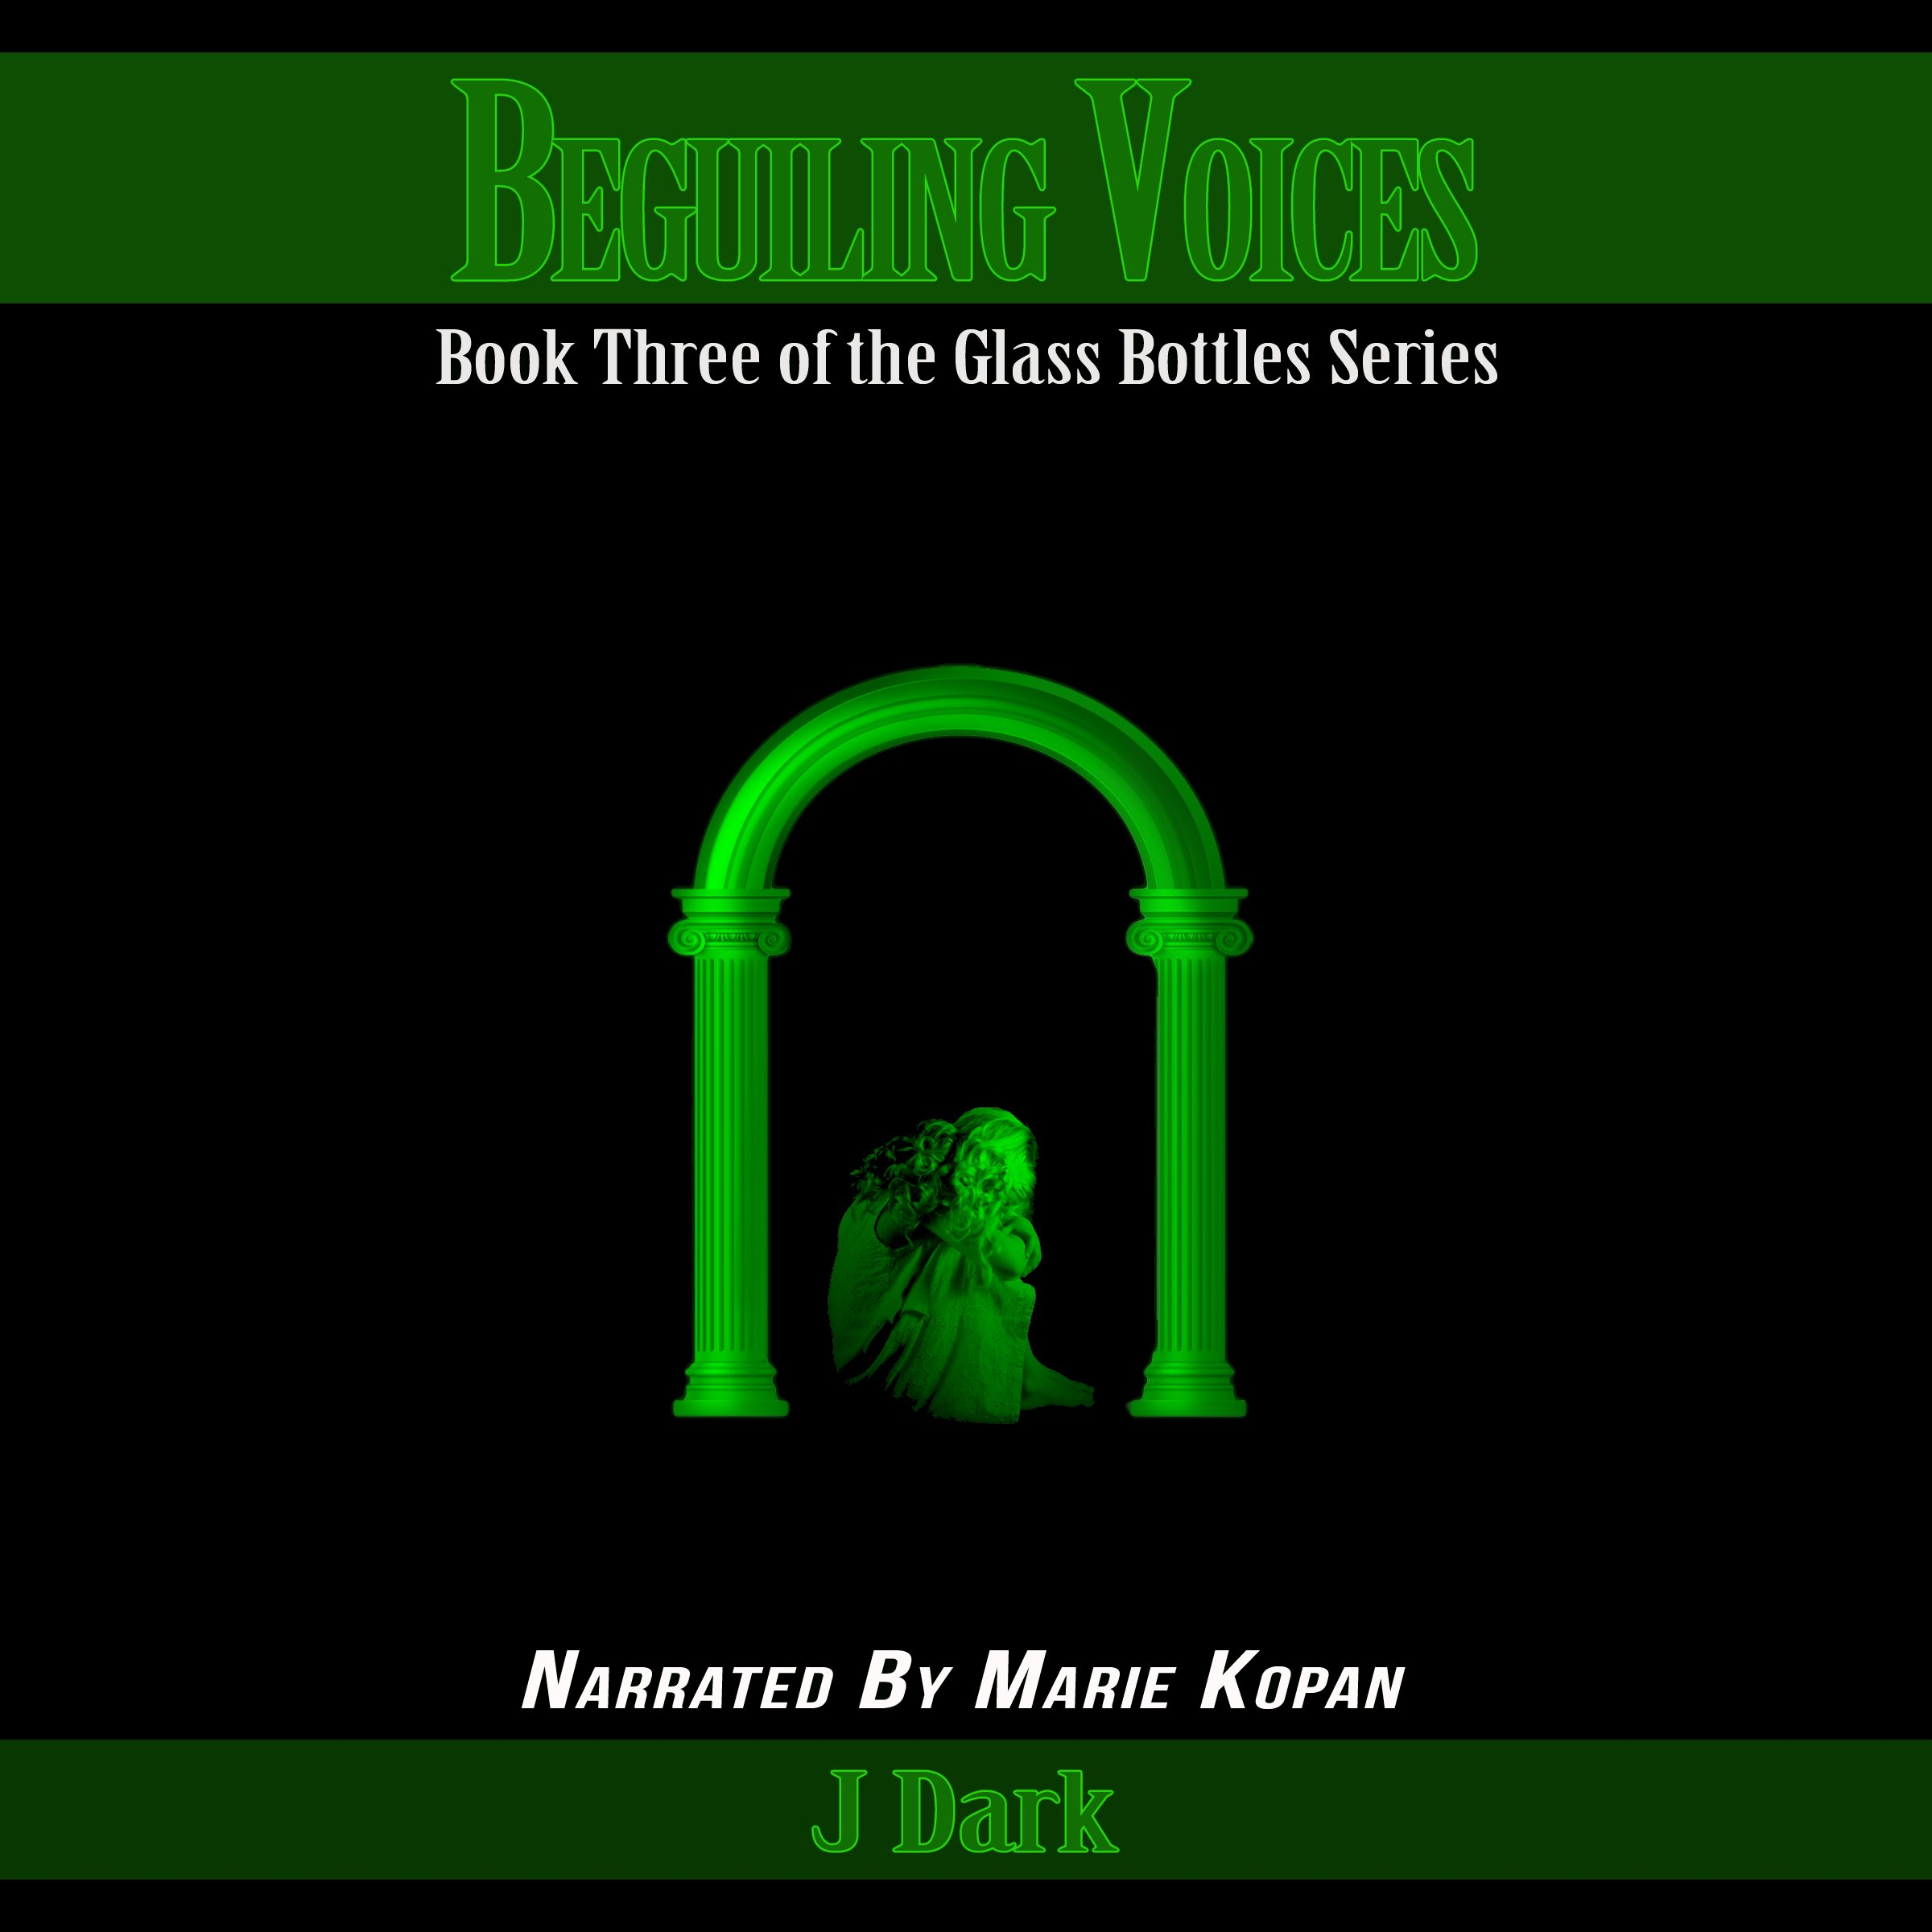 Beguiling Voices